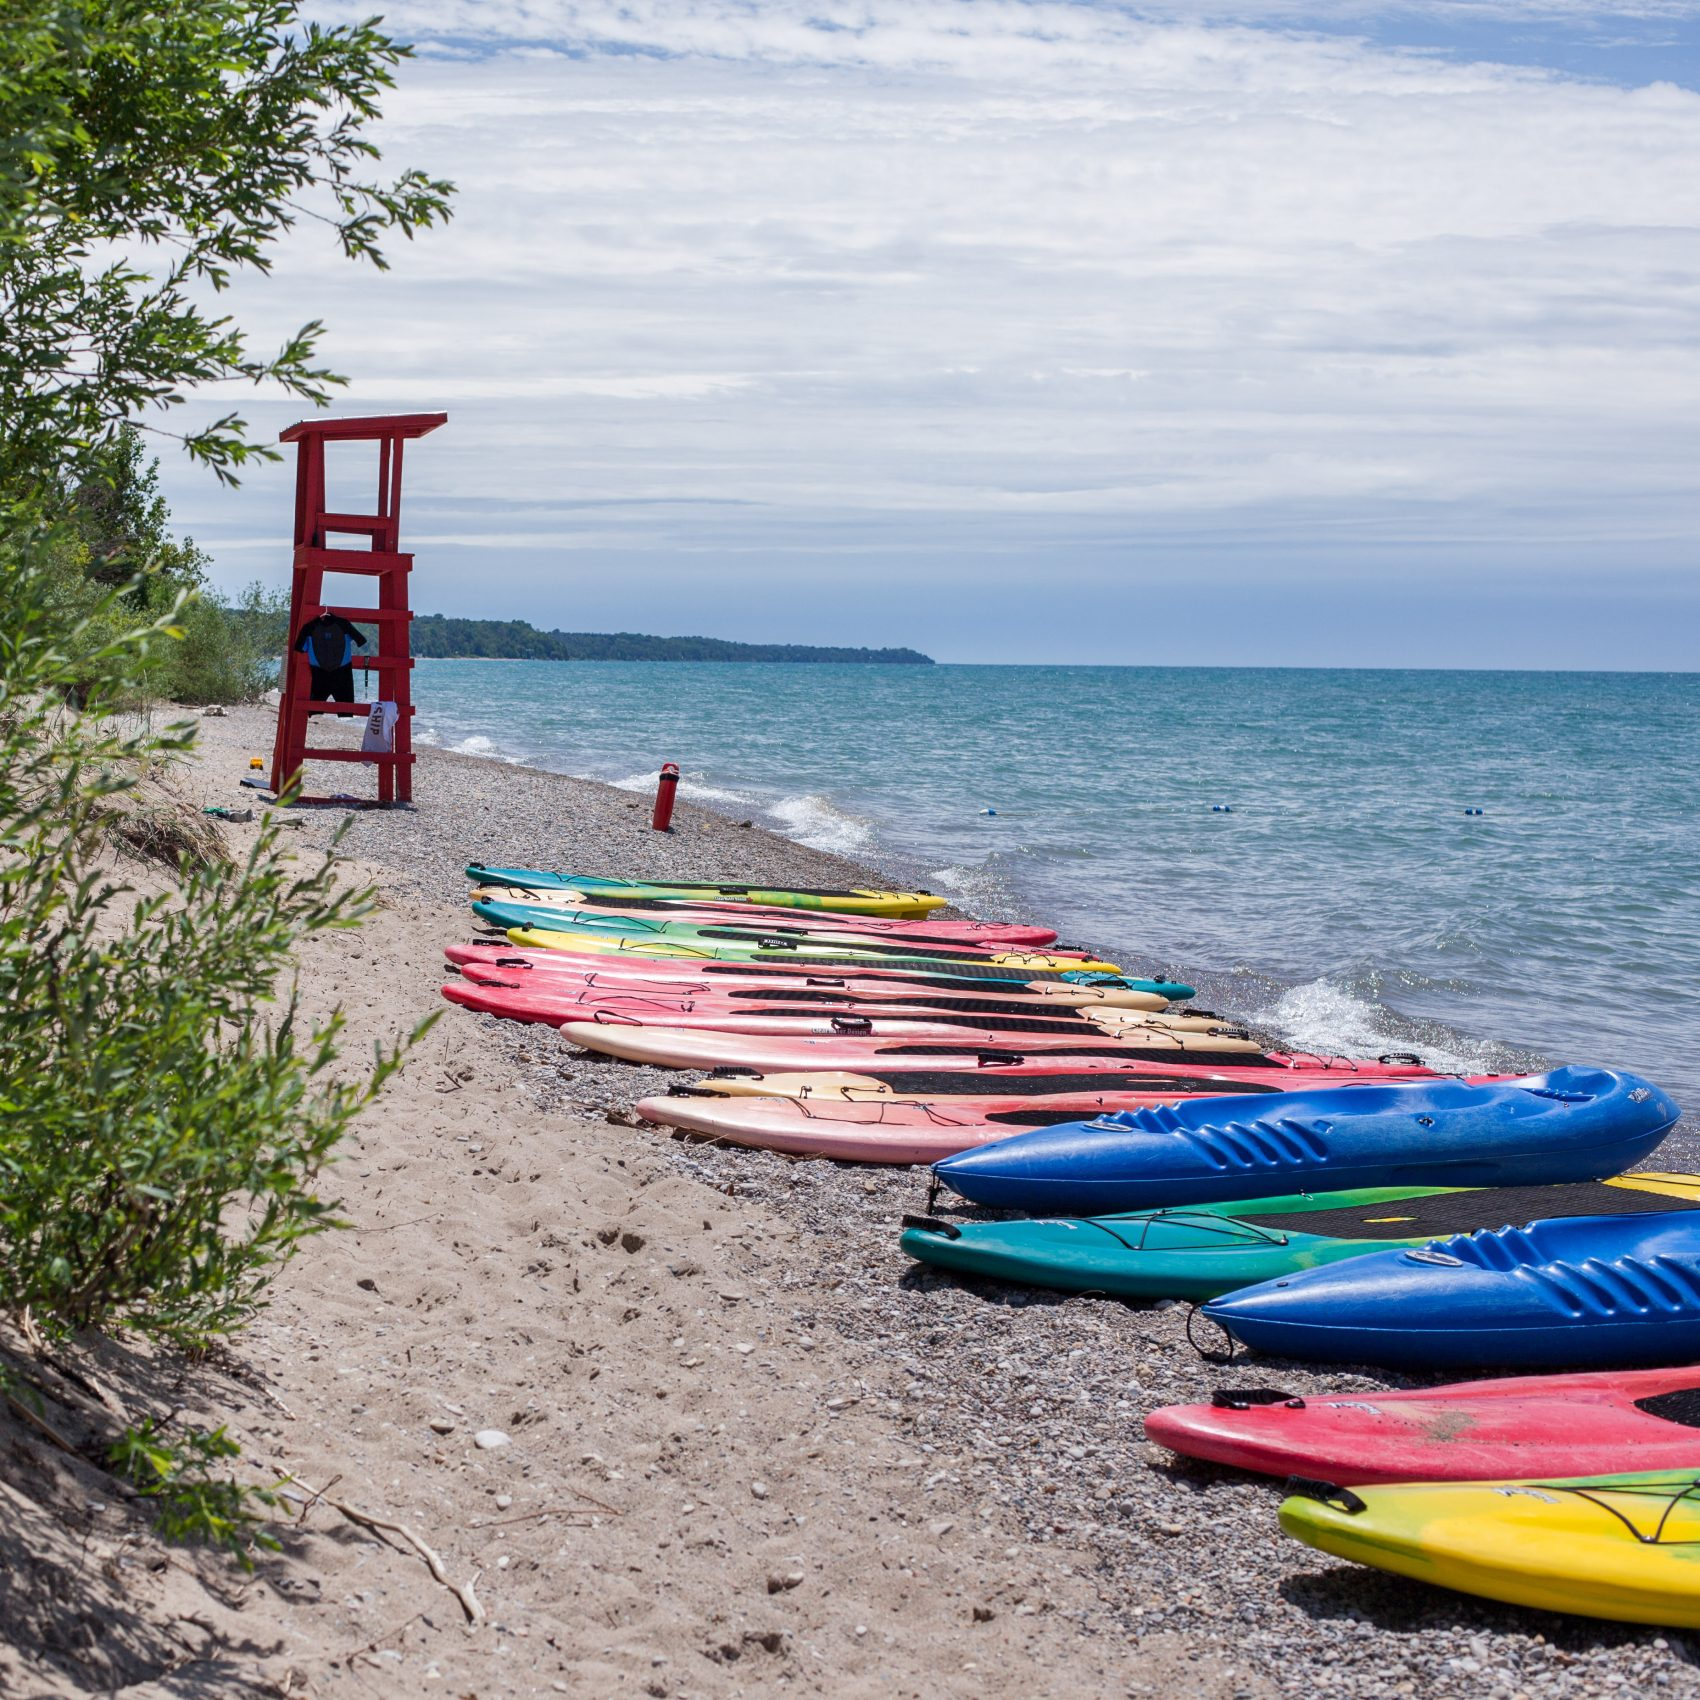 A scenic view of kayaks and paddle boards resting on the sandy shores of Lake Huron.